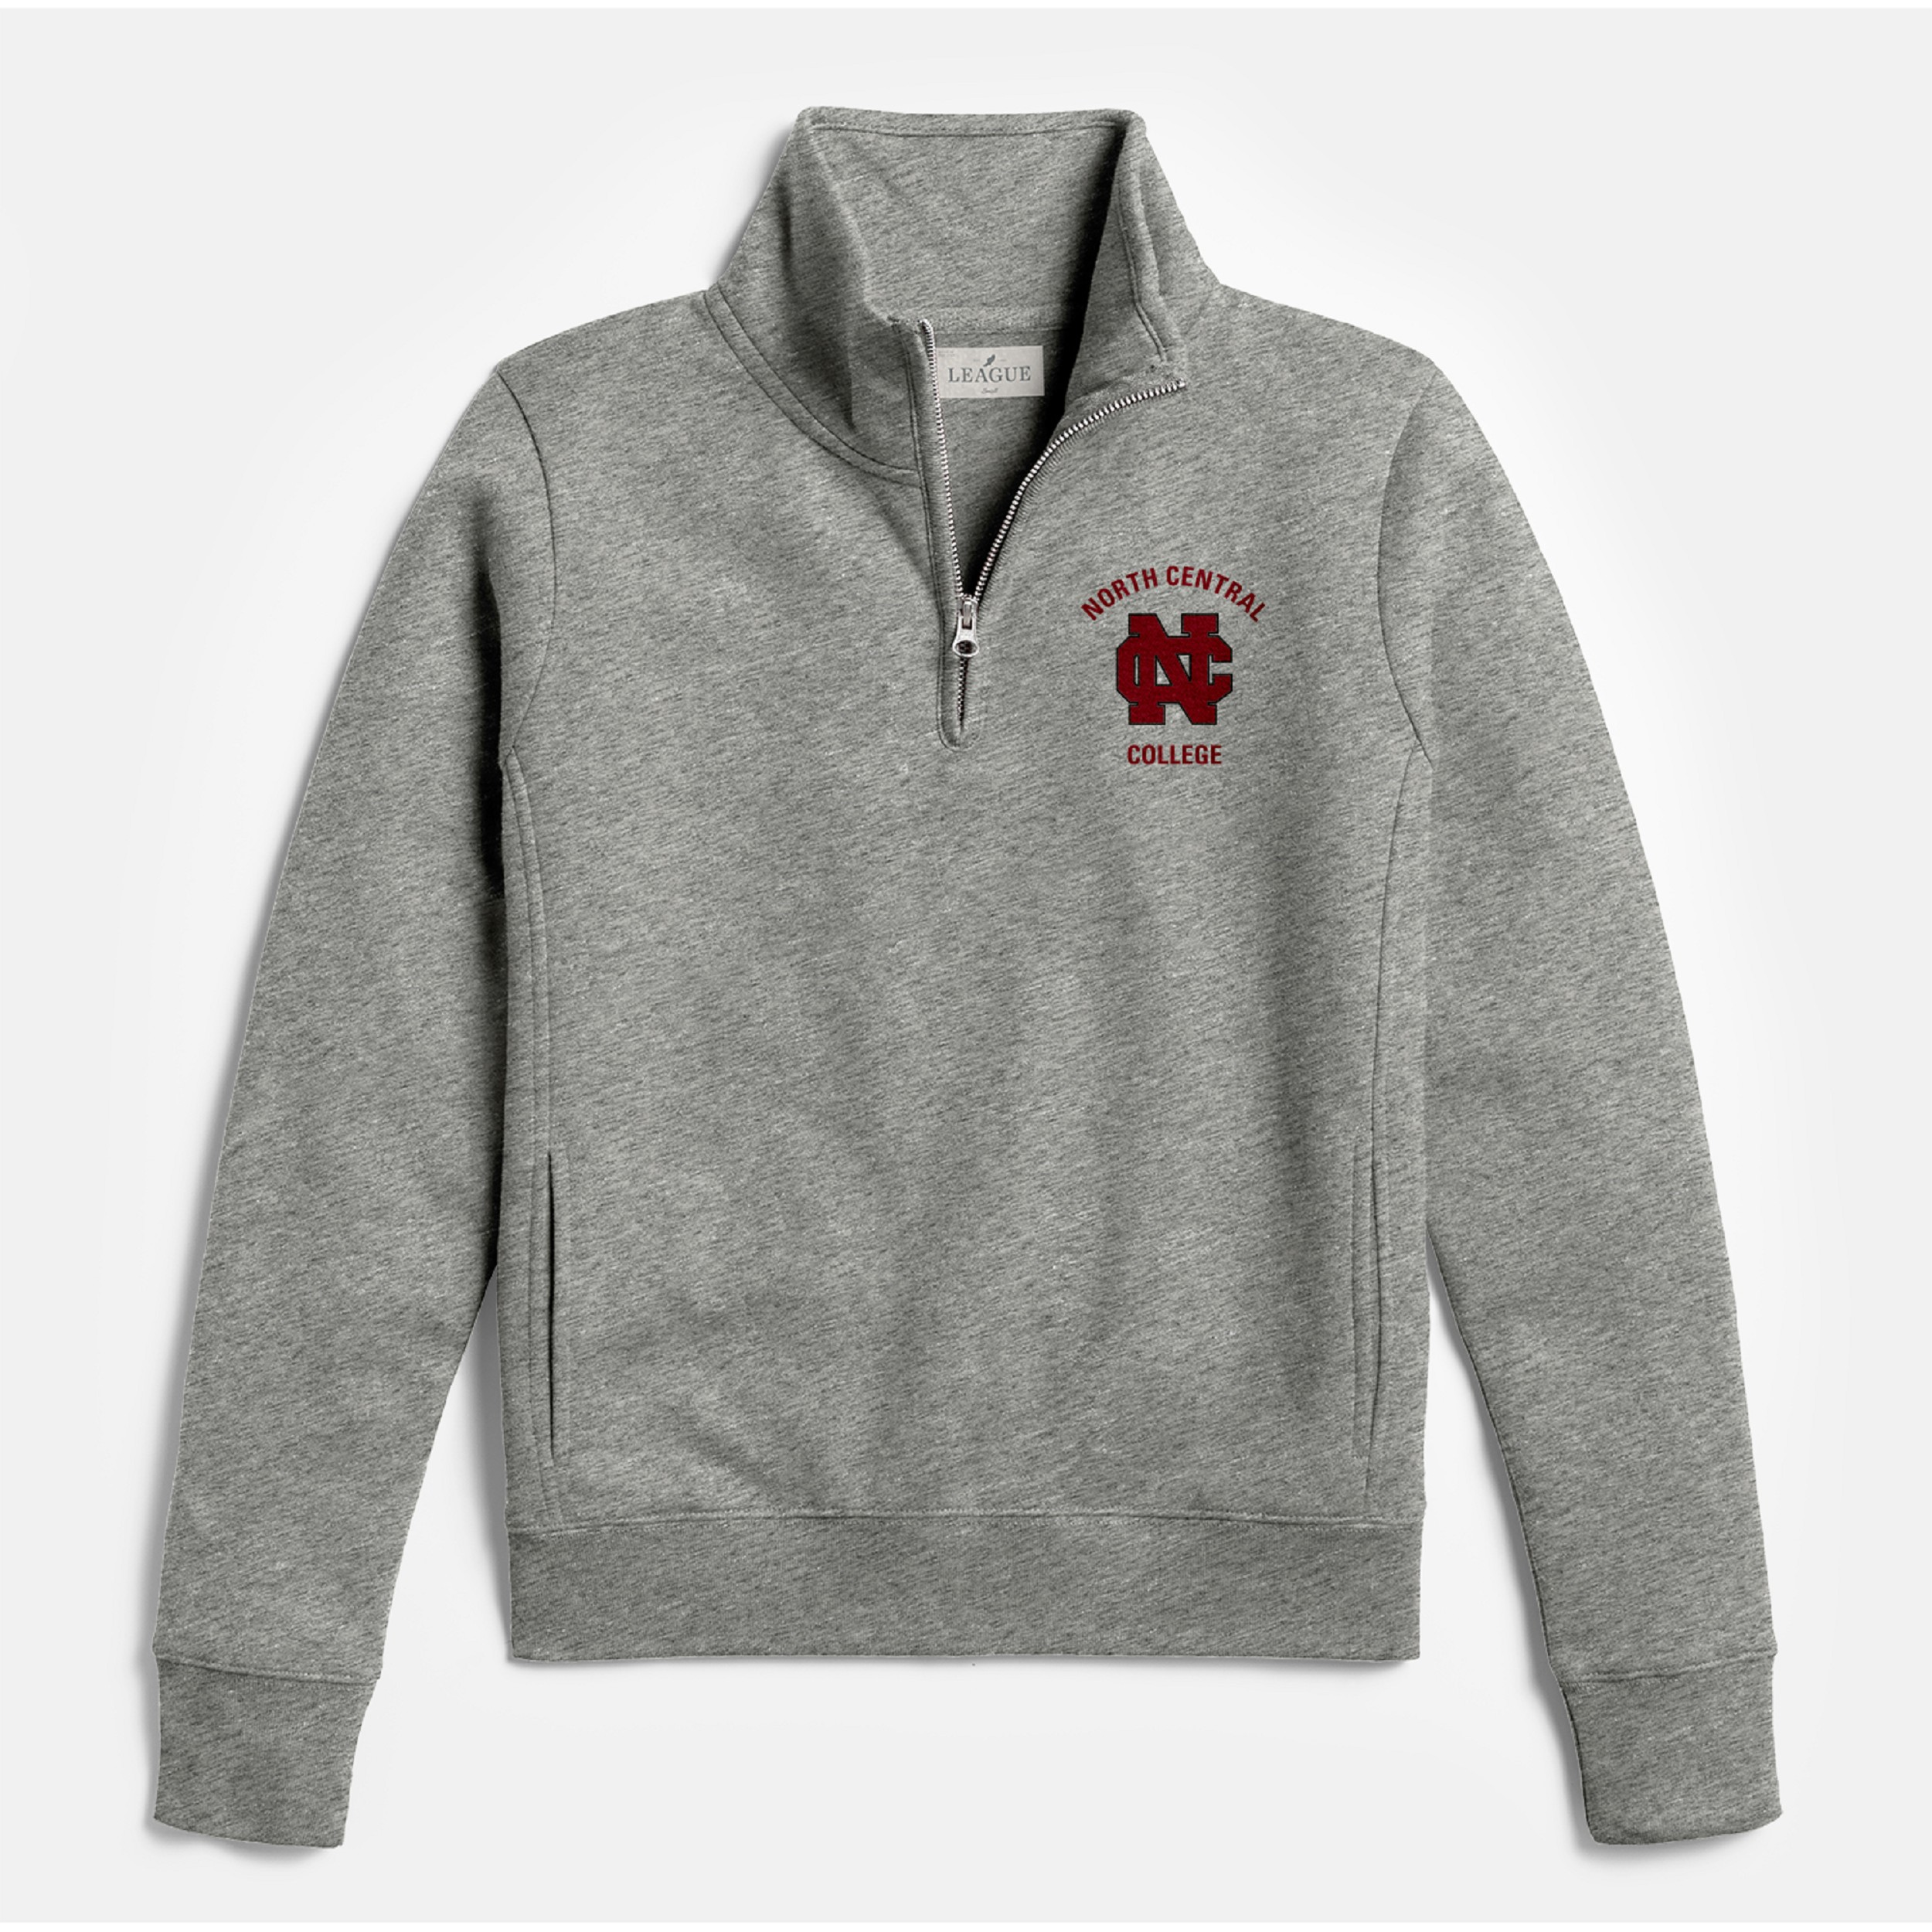 Image for the North Central College Academy 1/4 Zip by League product